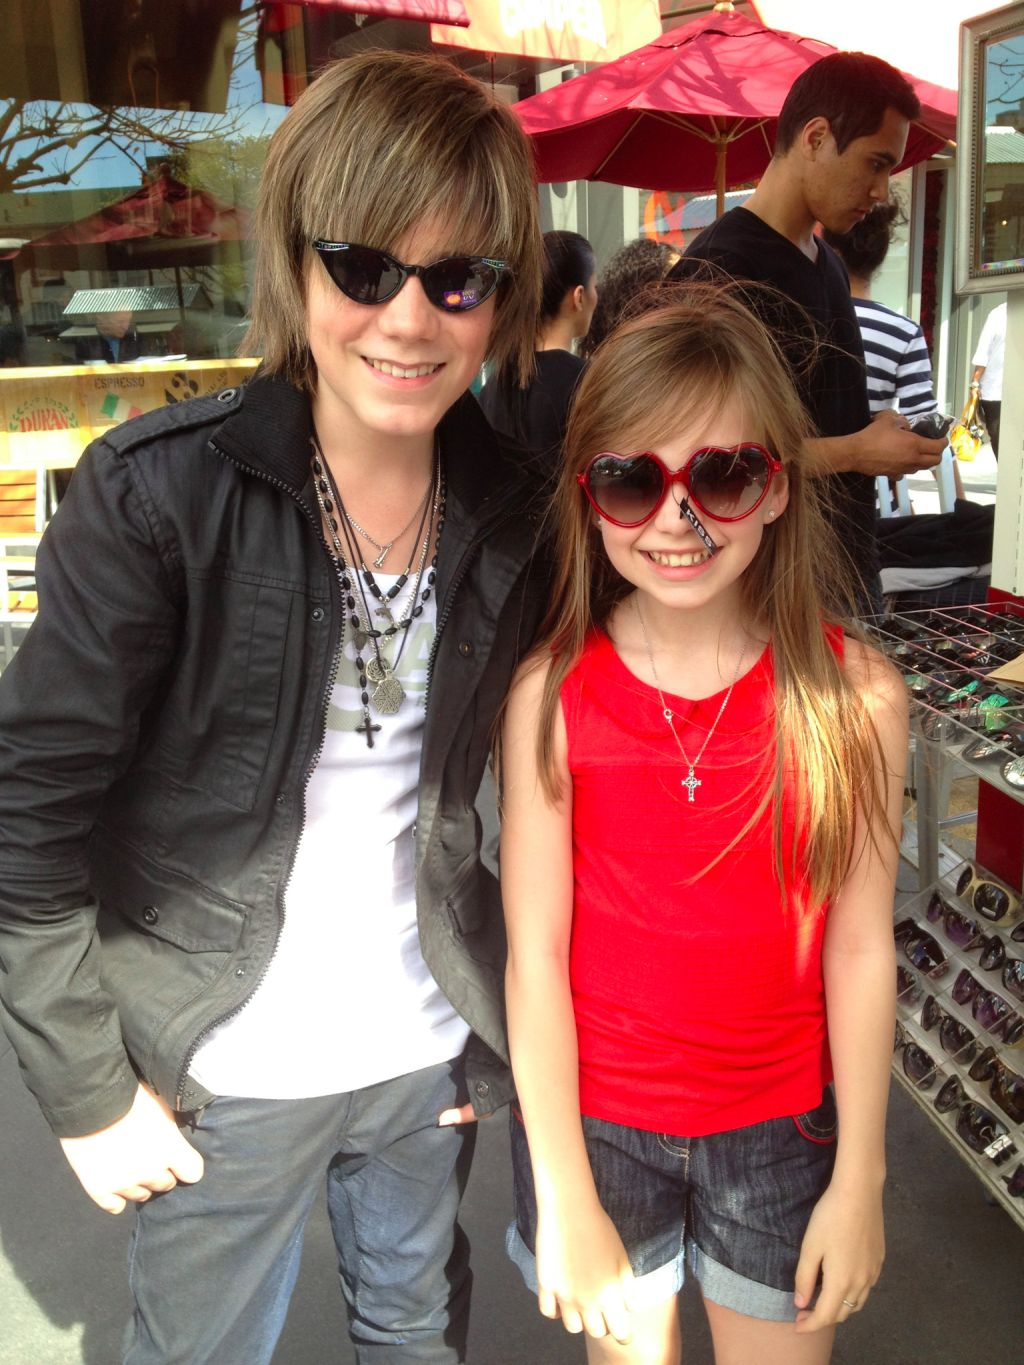 jordan jansen connie talbot relationship questions